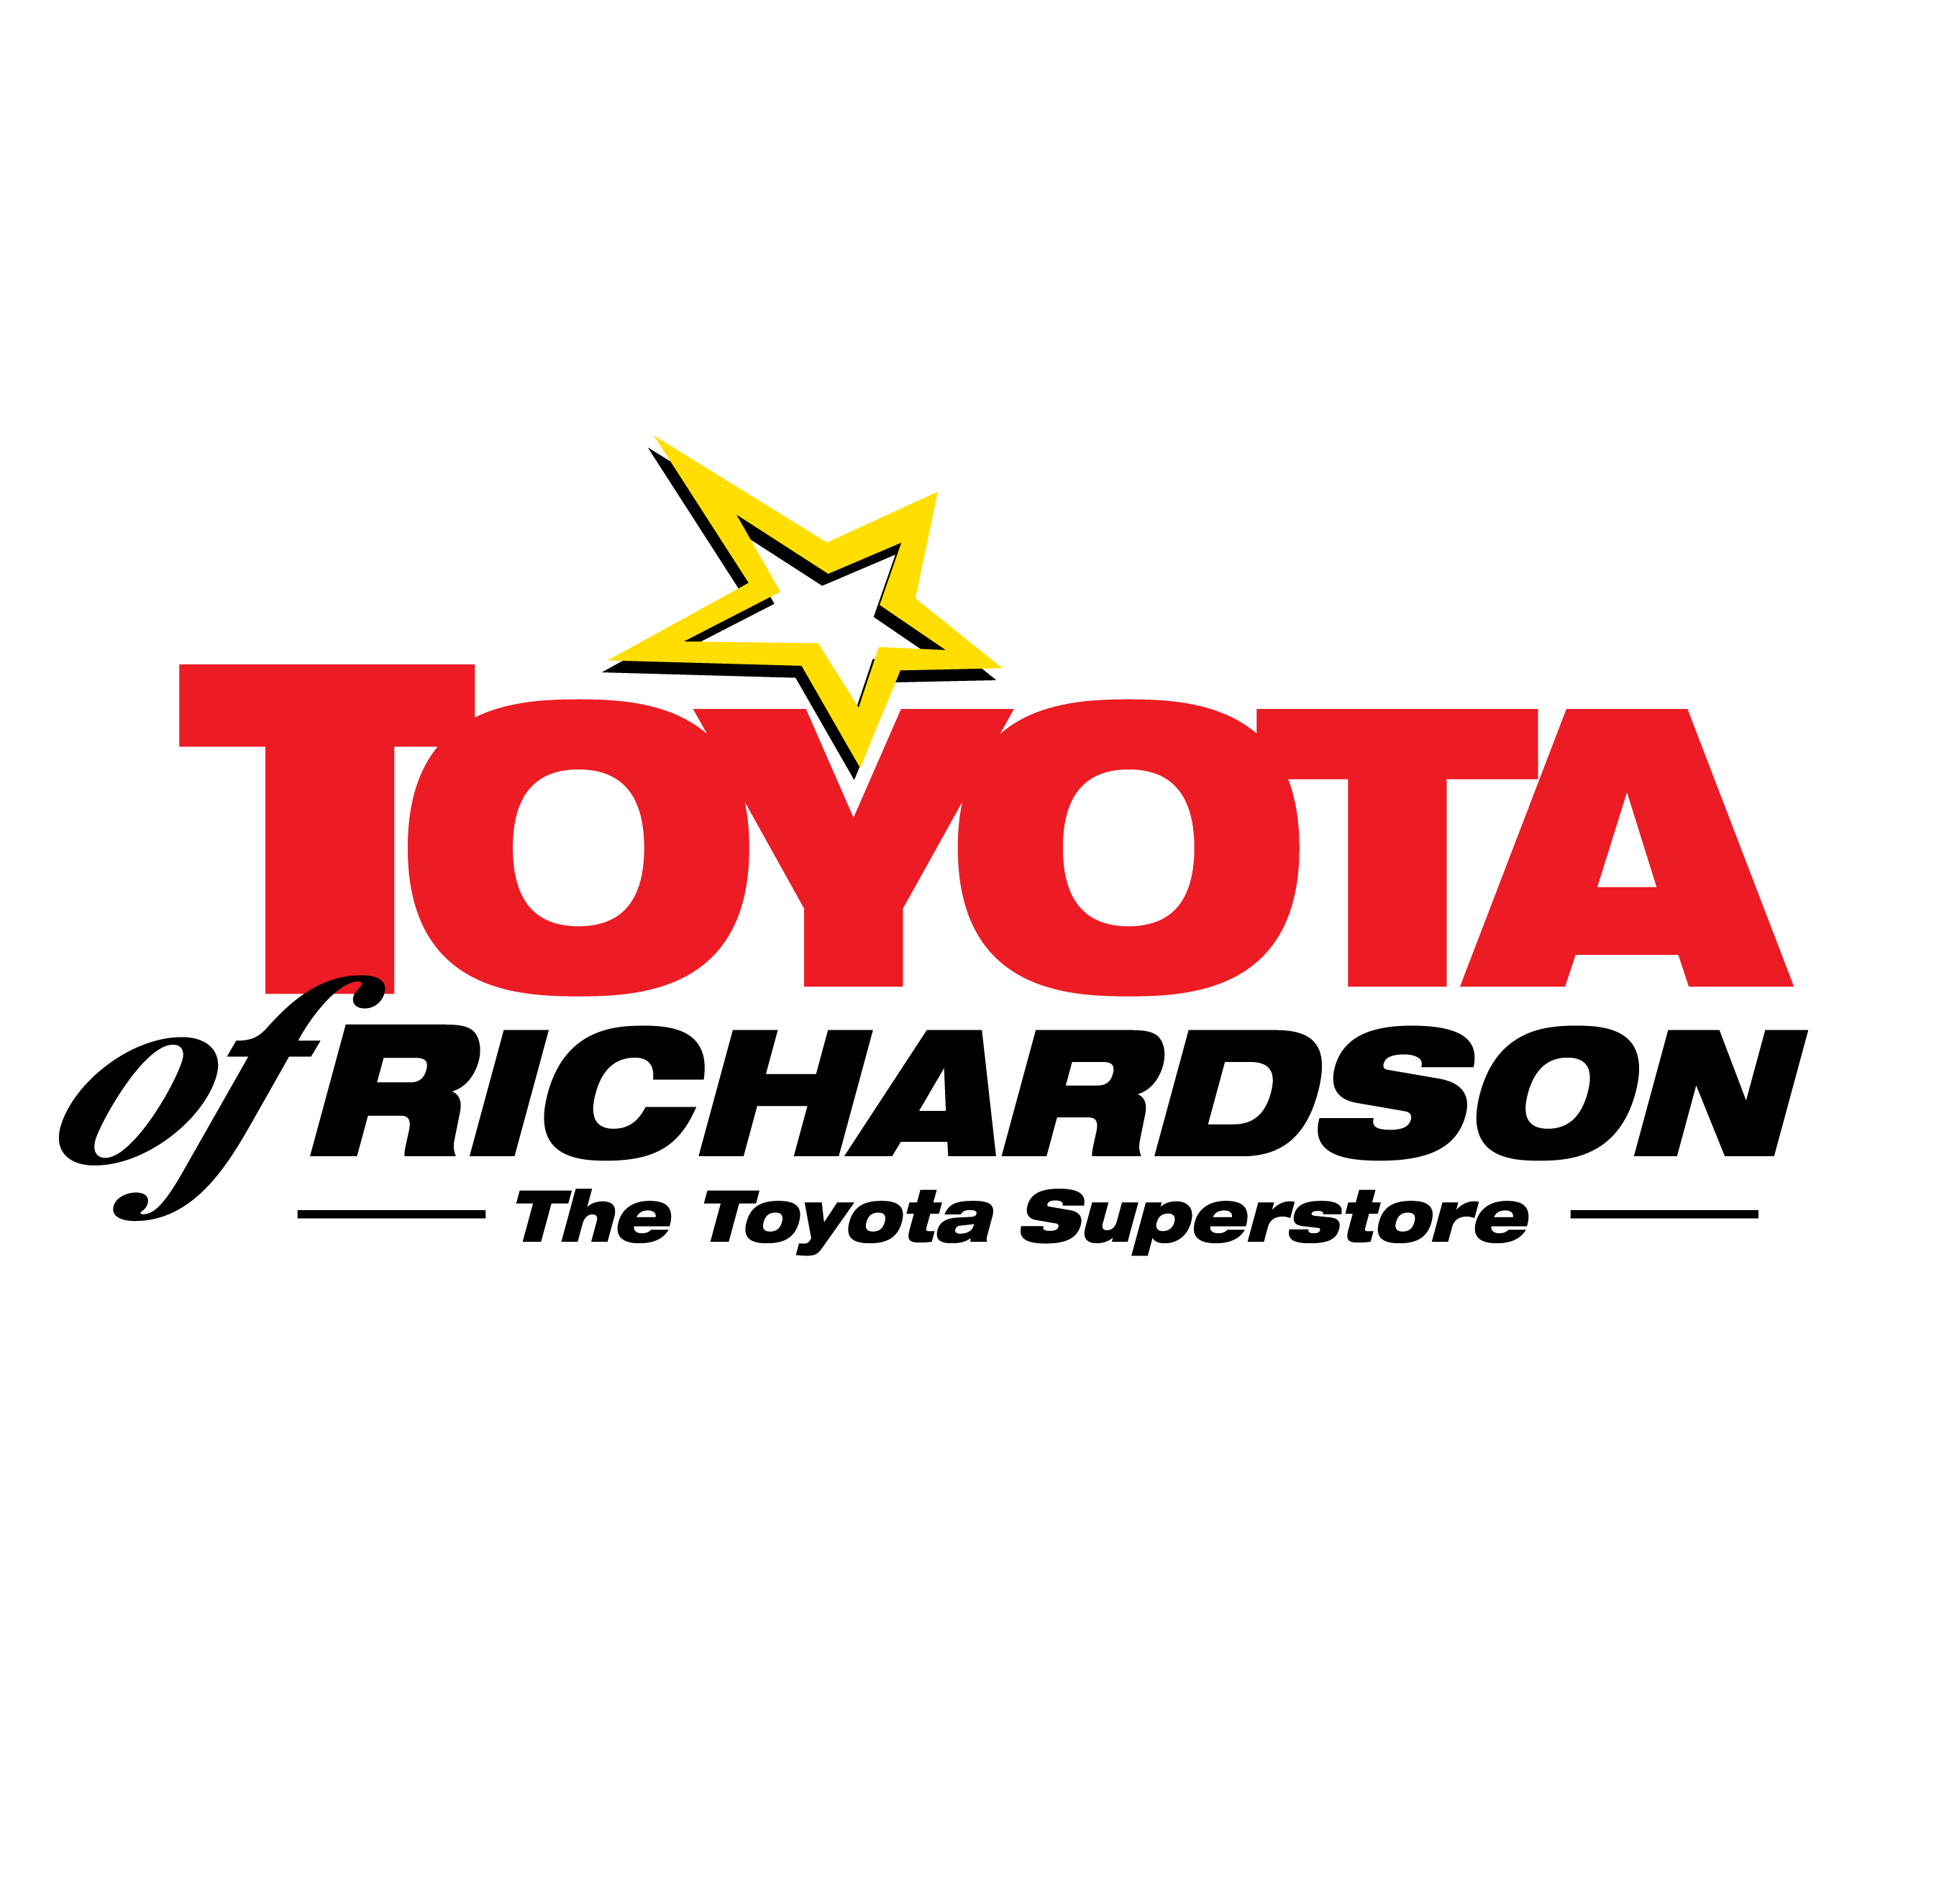 Toyota of Richardson | 5.27.19